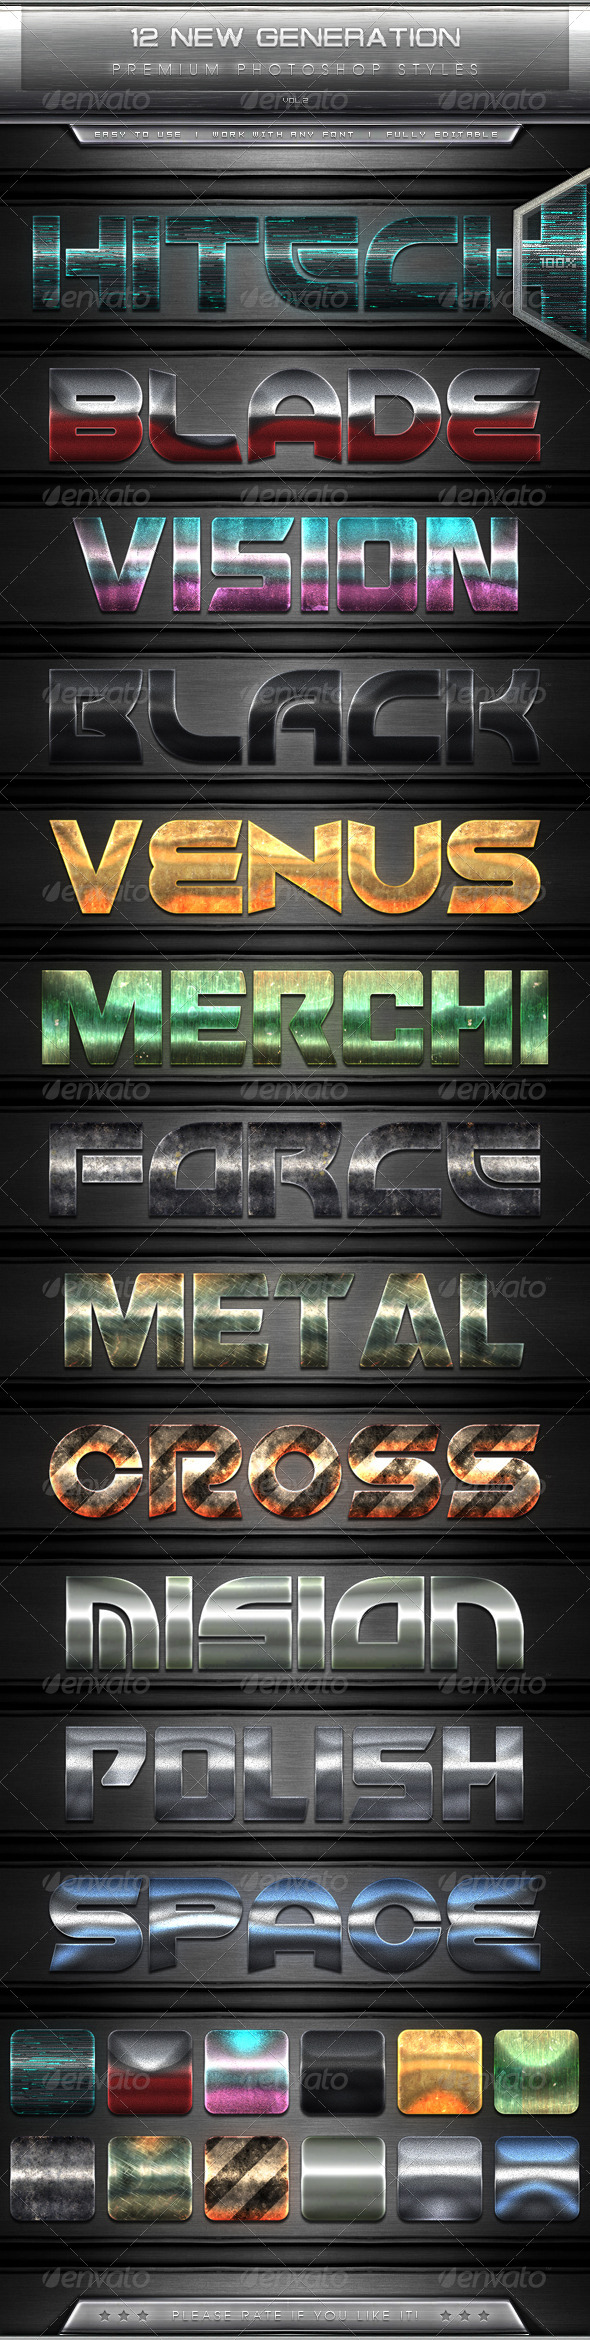 GraphicRiver 12 New Generation Text Effect Styles Vol.2 7663026